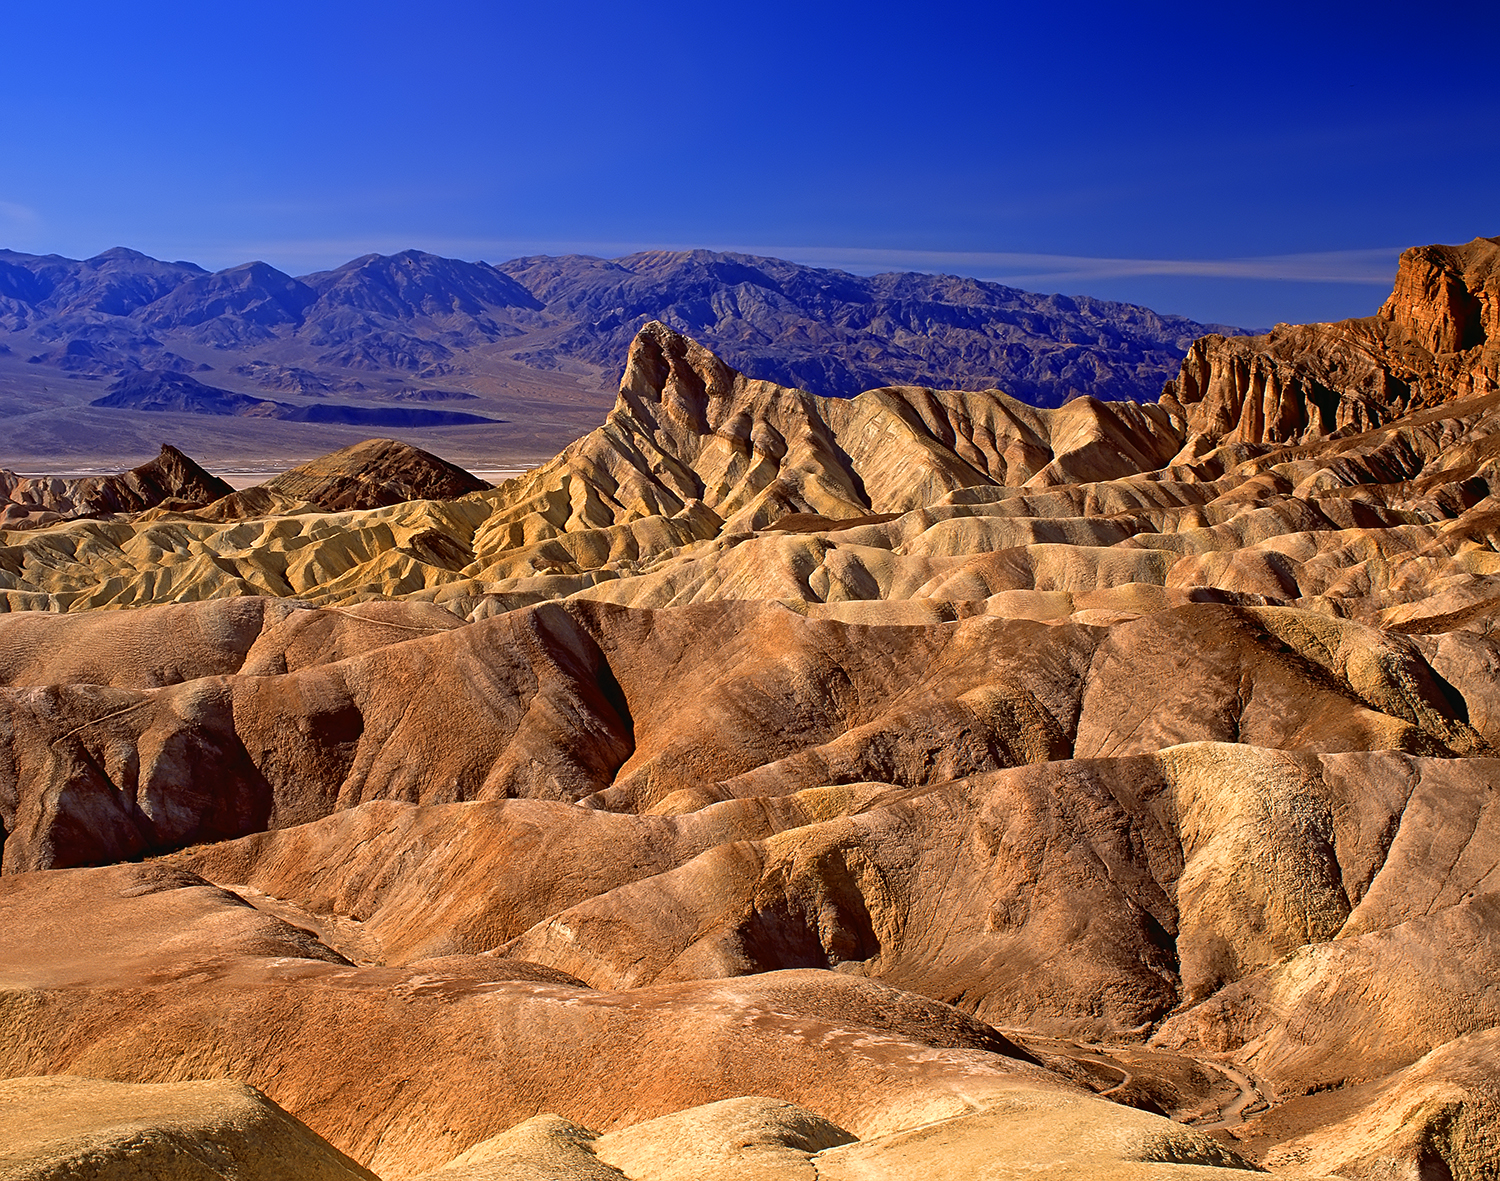 Manly Beacon from Zabriskie Point, Death Valley 1